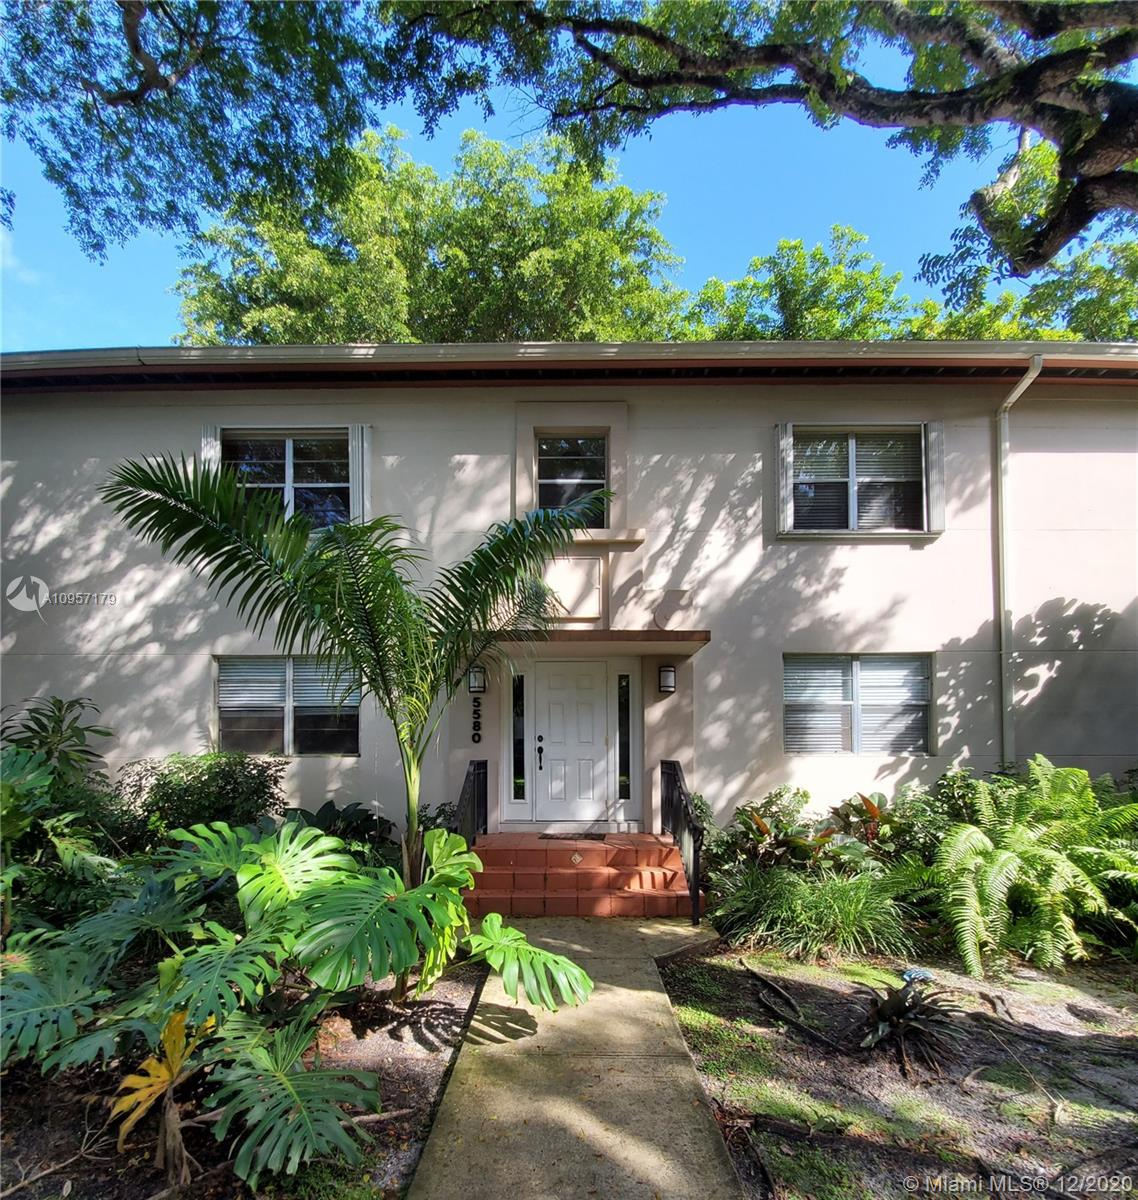 Cozy 2 bed/1 bath located in South Miami boarding with Coral Gables.  This property has a brand new a/c, wood floors throughout (light maple color), an updated kitchen, spacious rooms, accordion shutters, the community pool is steps from the unit as is the laundry facility.  Perfectly located for those working at UM or students as well as those who want to be centrally located.  Walking distance to South Miami restaurants, Whole Foods, and plenty of shopping.